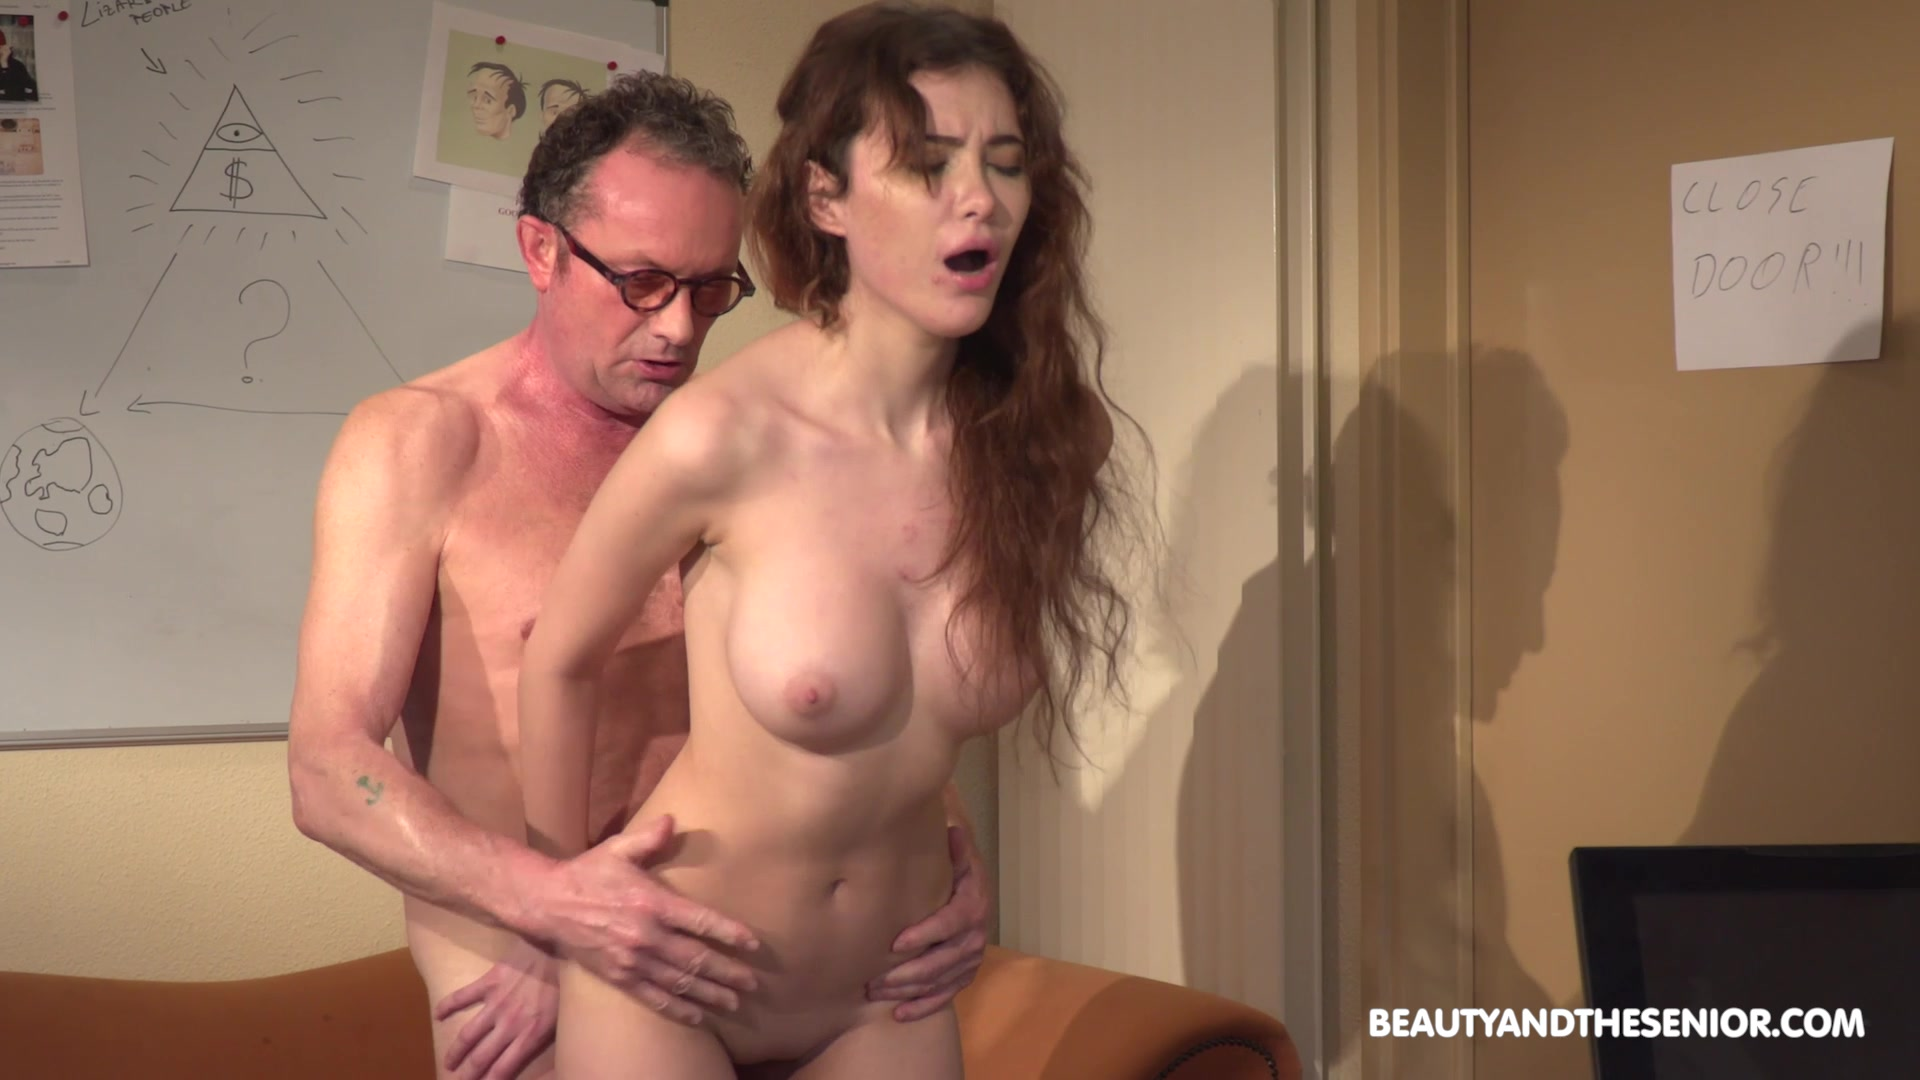 Young beauyt Gisha Forza drops her clothes for sex with and older guy